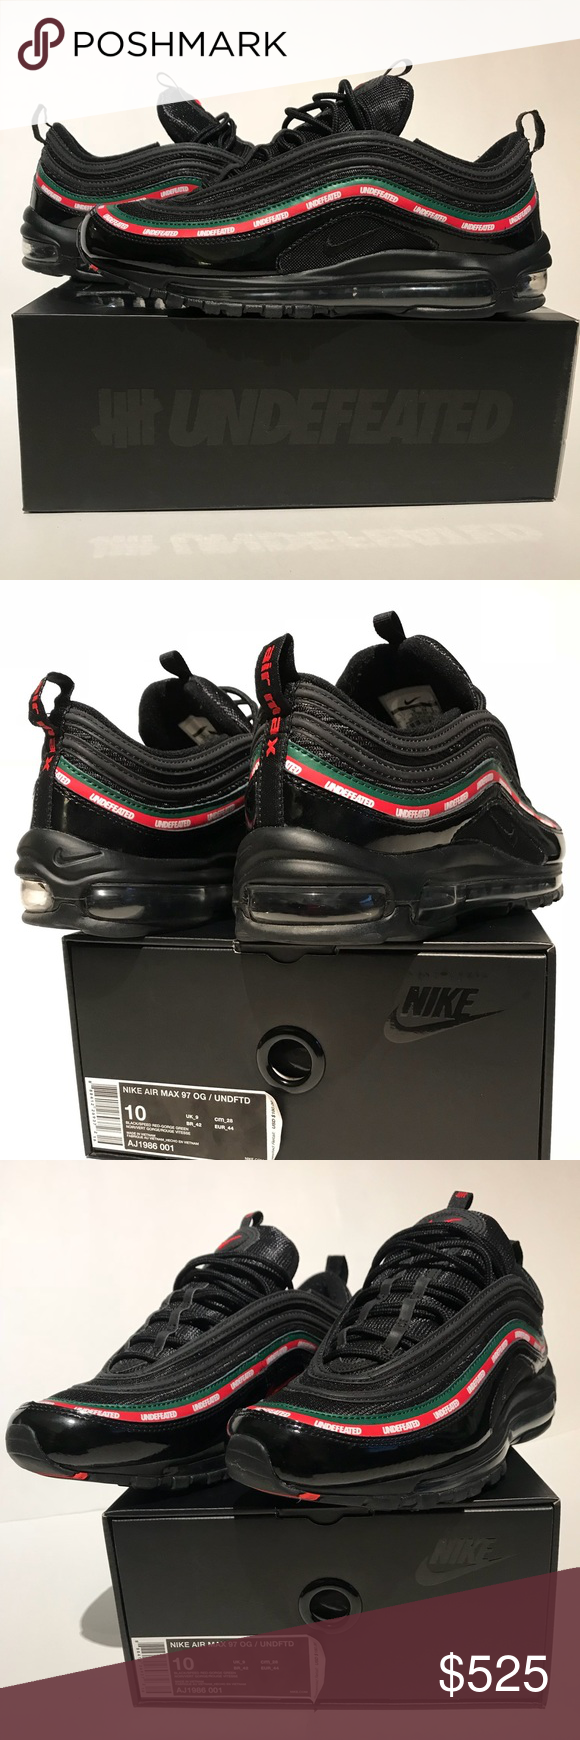 timeless design 2c679 eb95c Nike Air Max 97's ( UNDEFEATED ) Collaboration DEADSTOCK ...